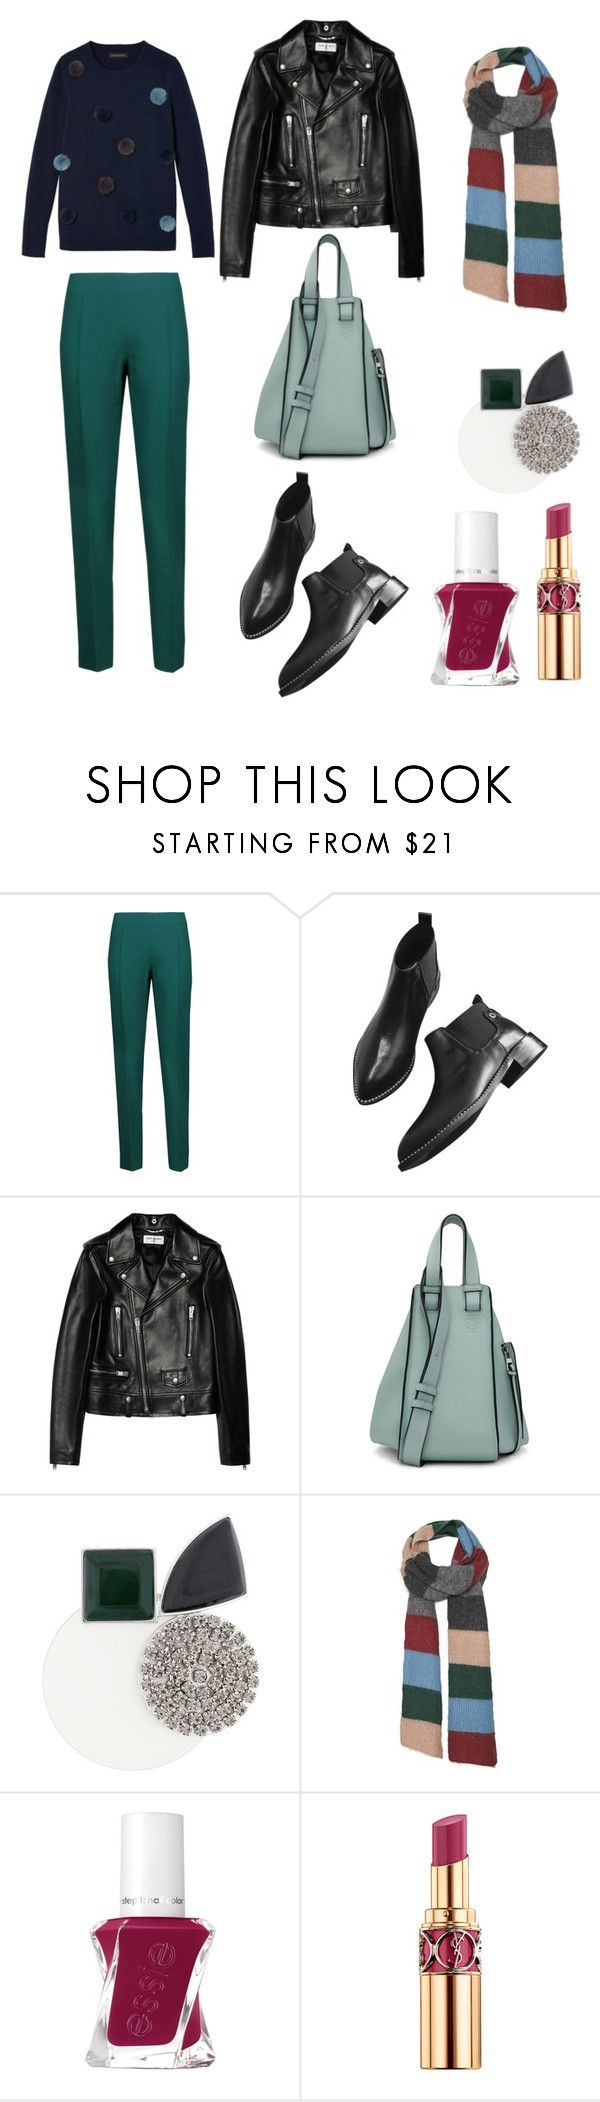 """Green trousers 5"" by mary-en ❤ liked on Polyvore featuring Antonio Berardi, Yves Saint Laurent, Loewe, Marni, StreetStyle, colorful, fallfashion and fall2017"